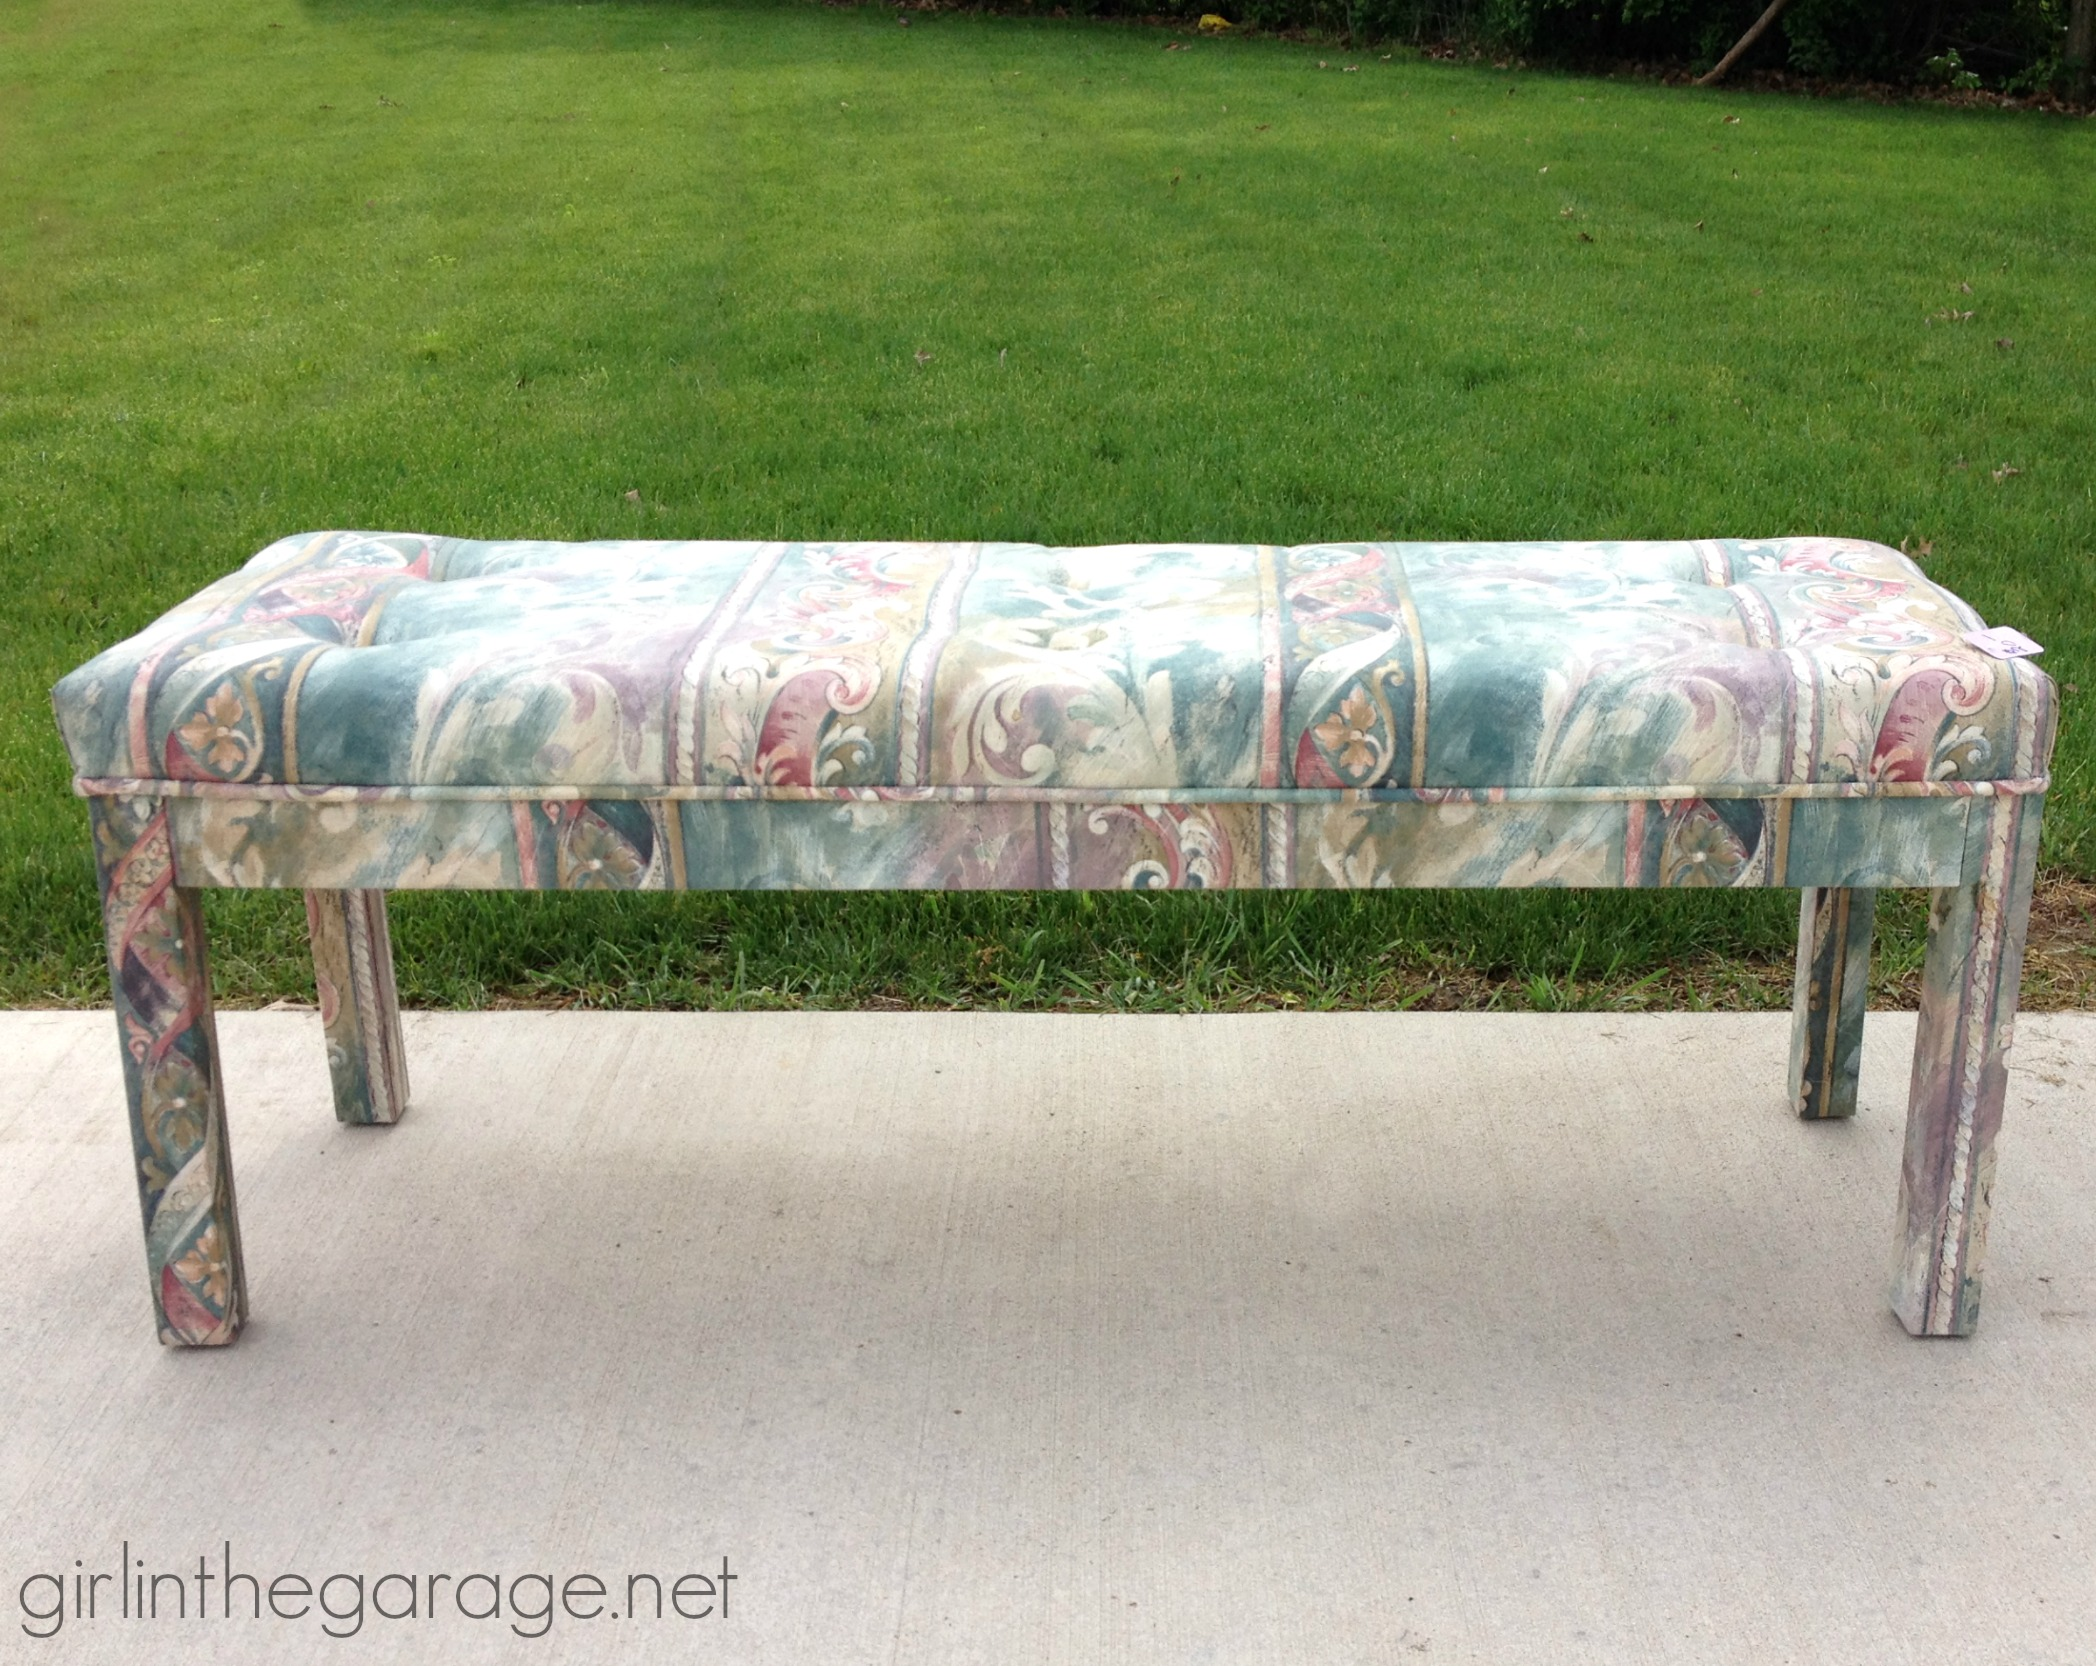 Tacky thrifted bench makeover - Before